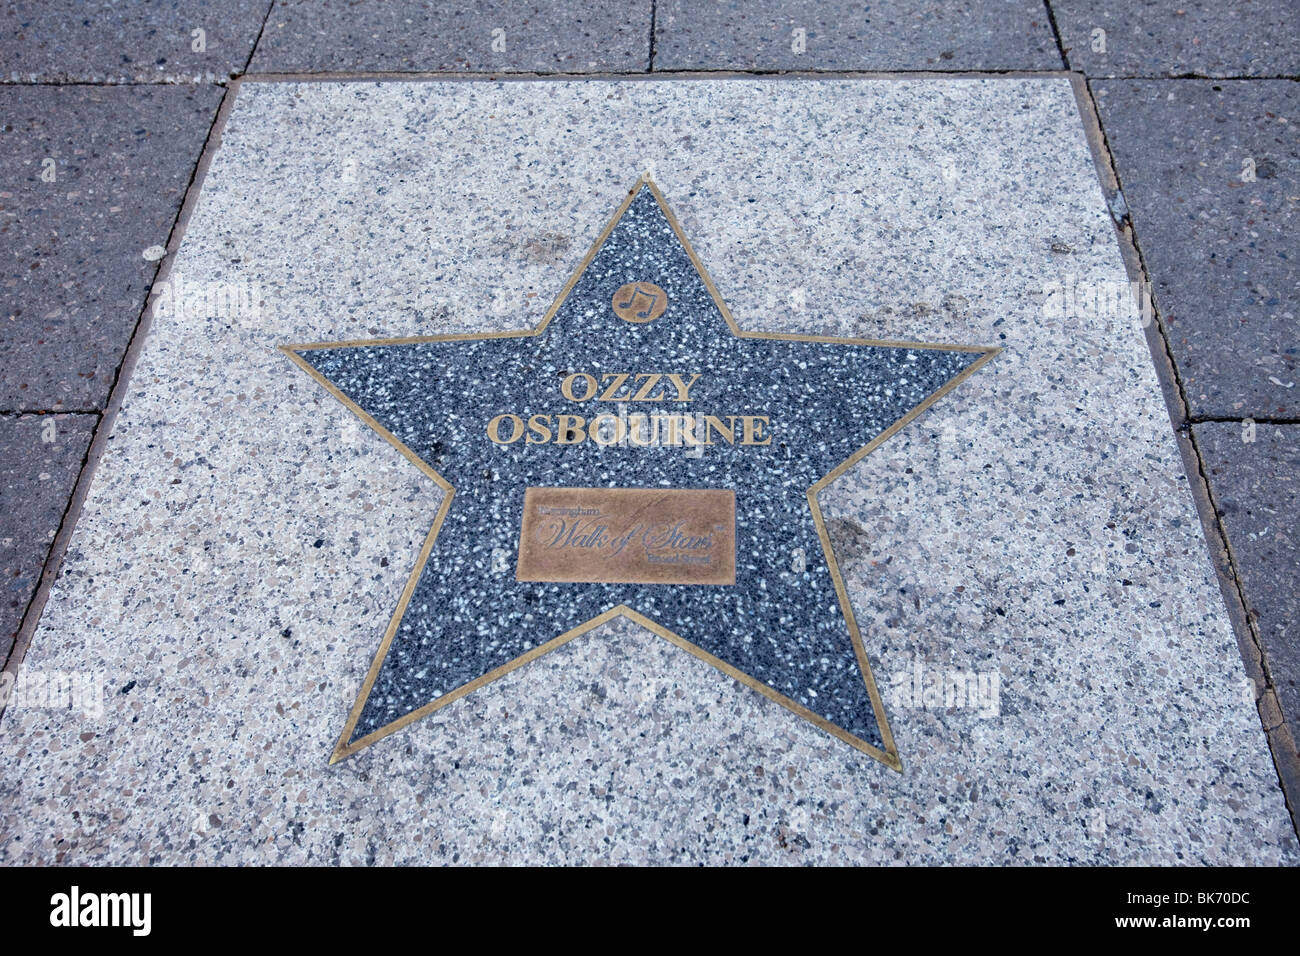 Ozzy Osbourne's star on Broad Street, Birmingham. It is one of the 'Walk of Stars' honouring artists - Stock Image